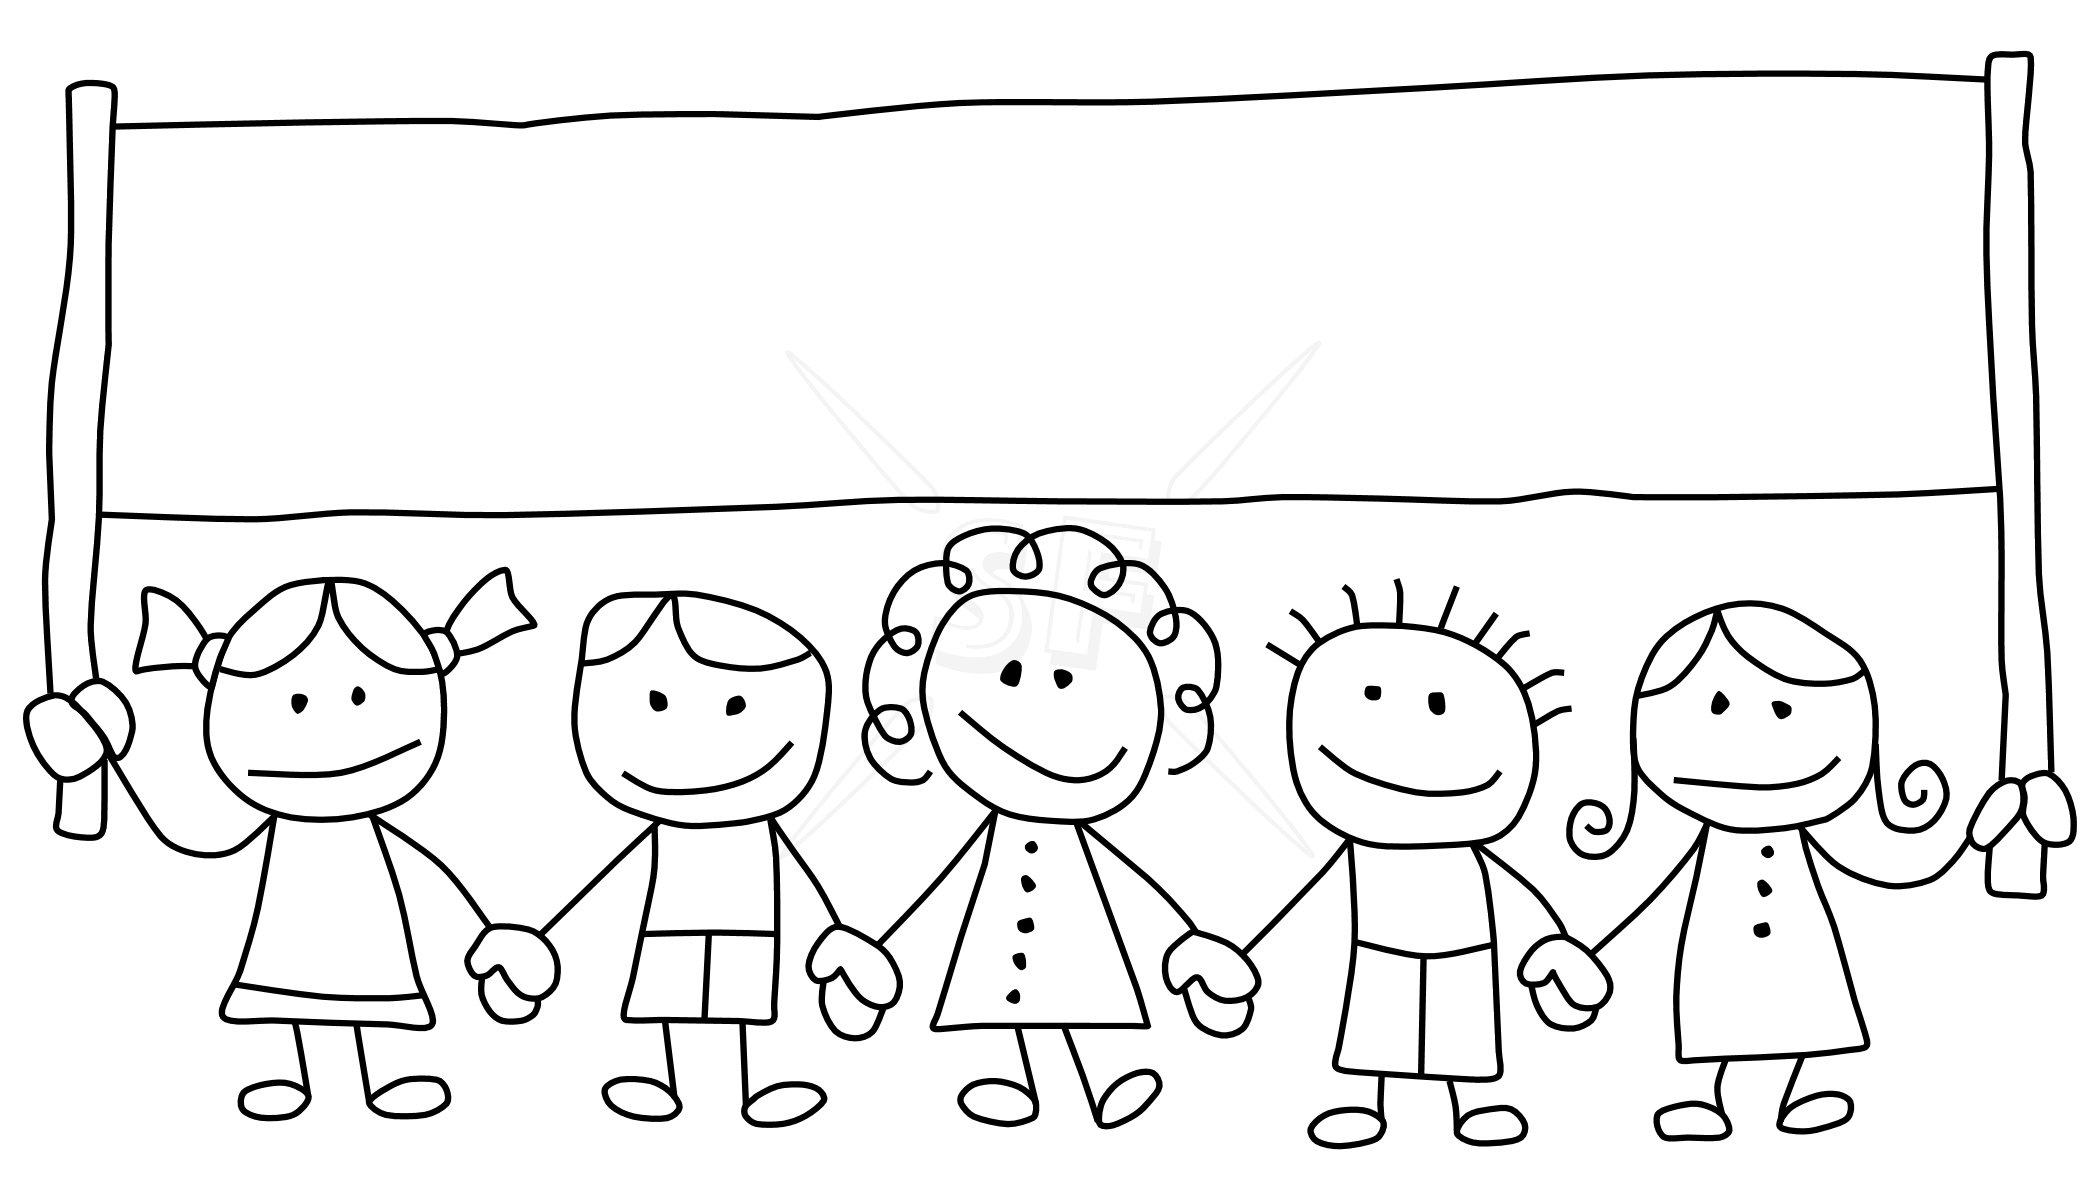 Family clipart black and white 4 people jpg free Family black and white family clipart black and white 5 people 4 ... jpg free